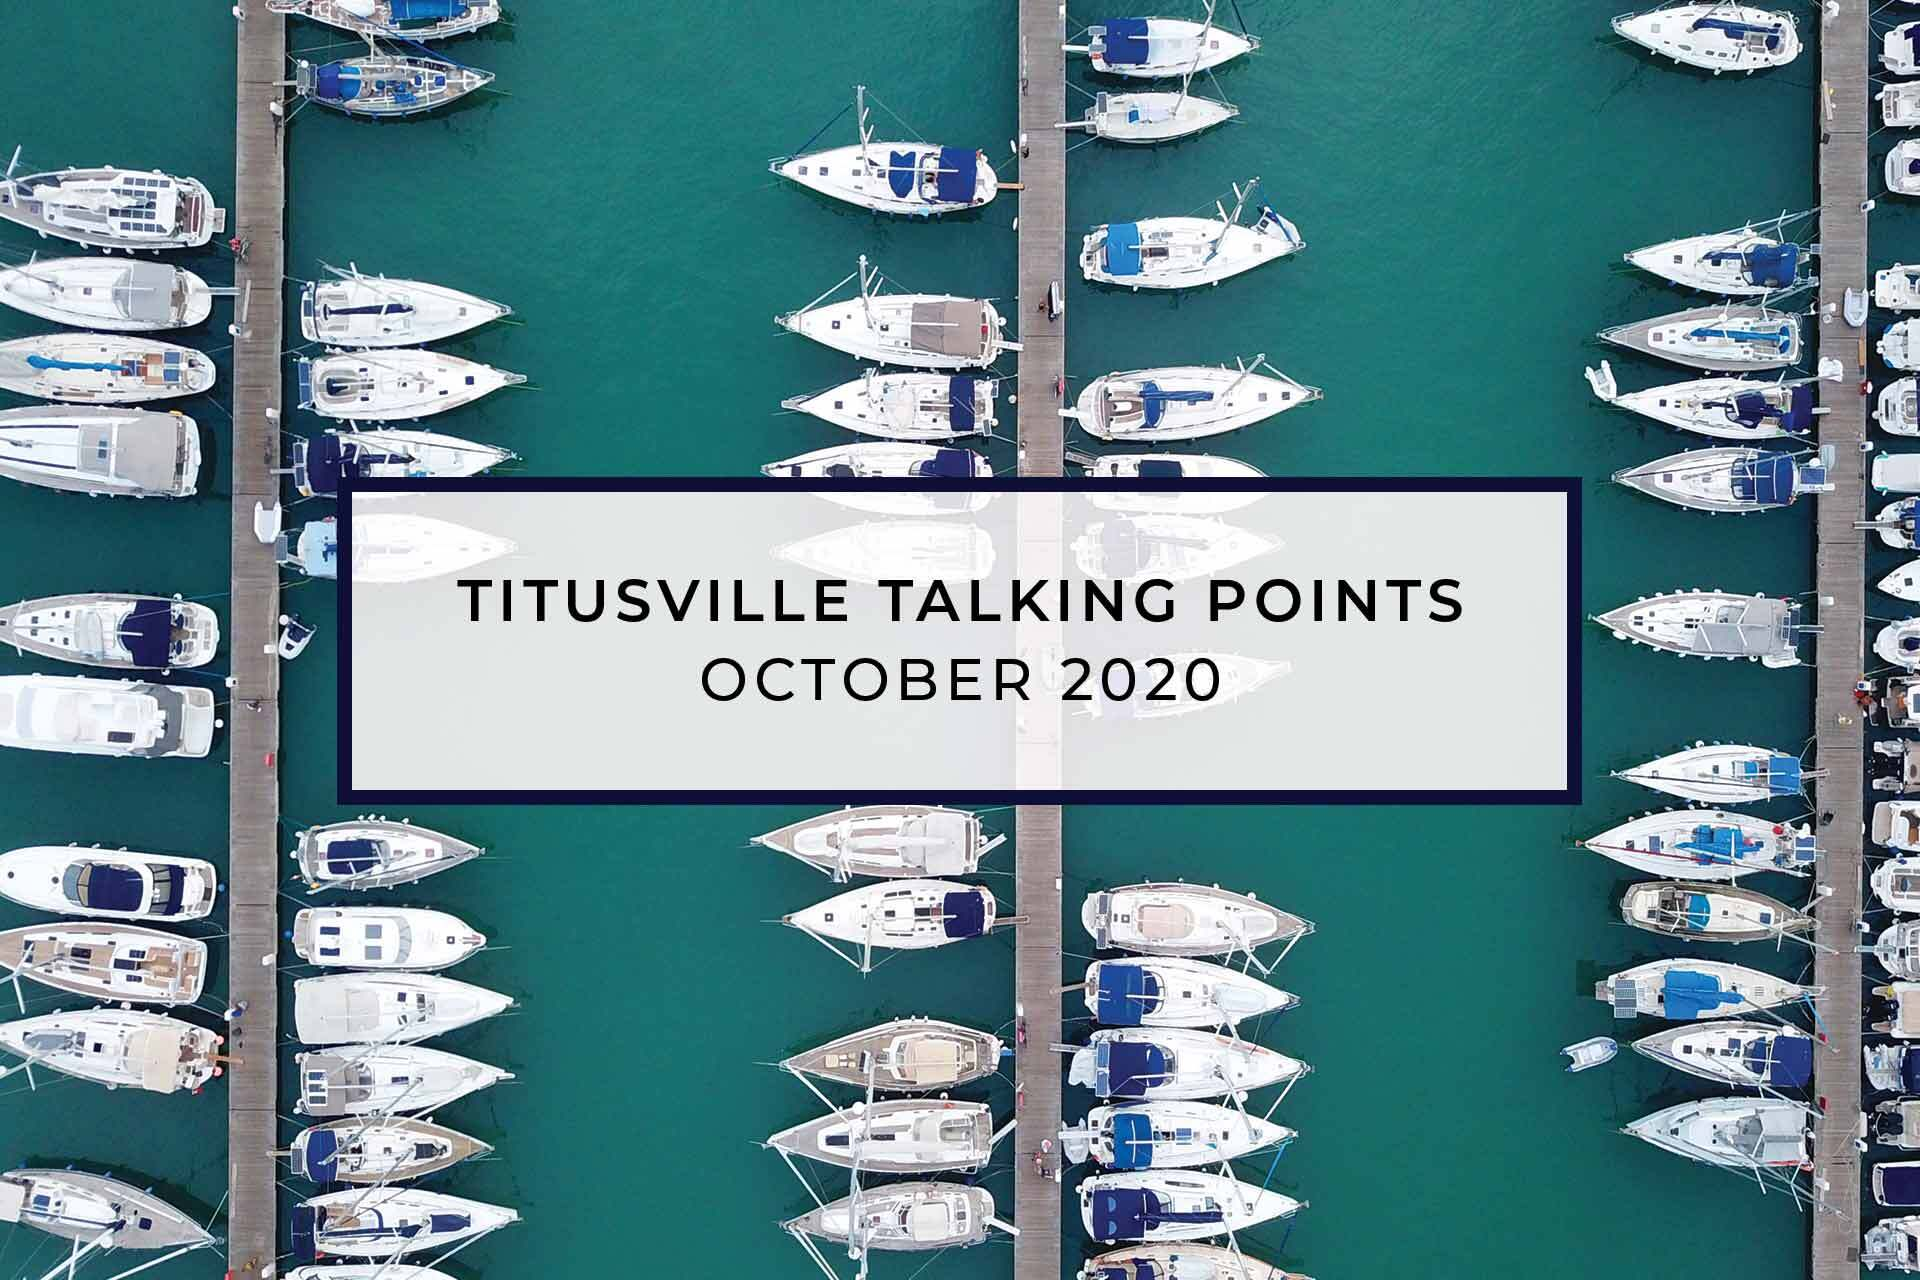 Titusville Talking Points | Titusville Marina